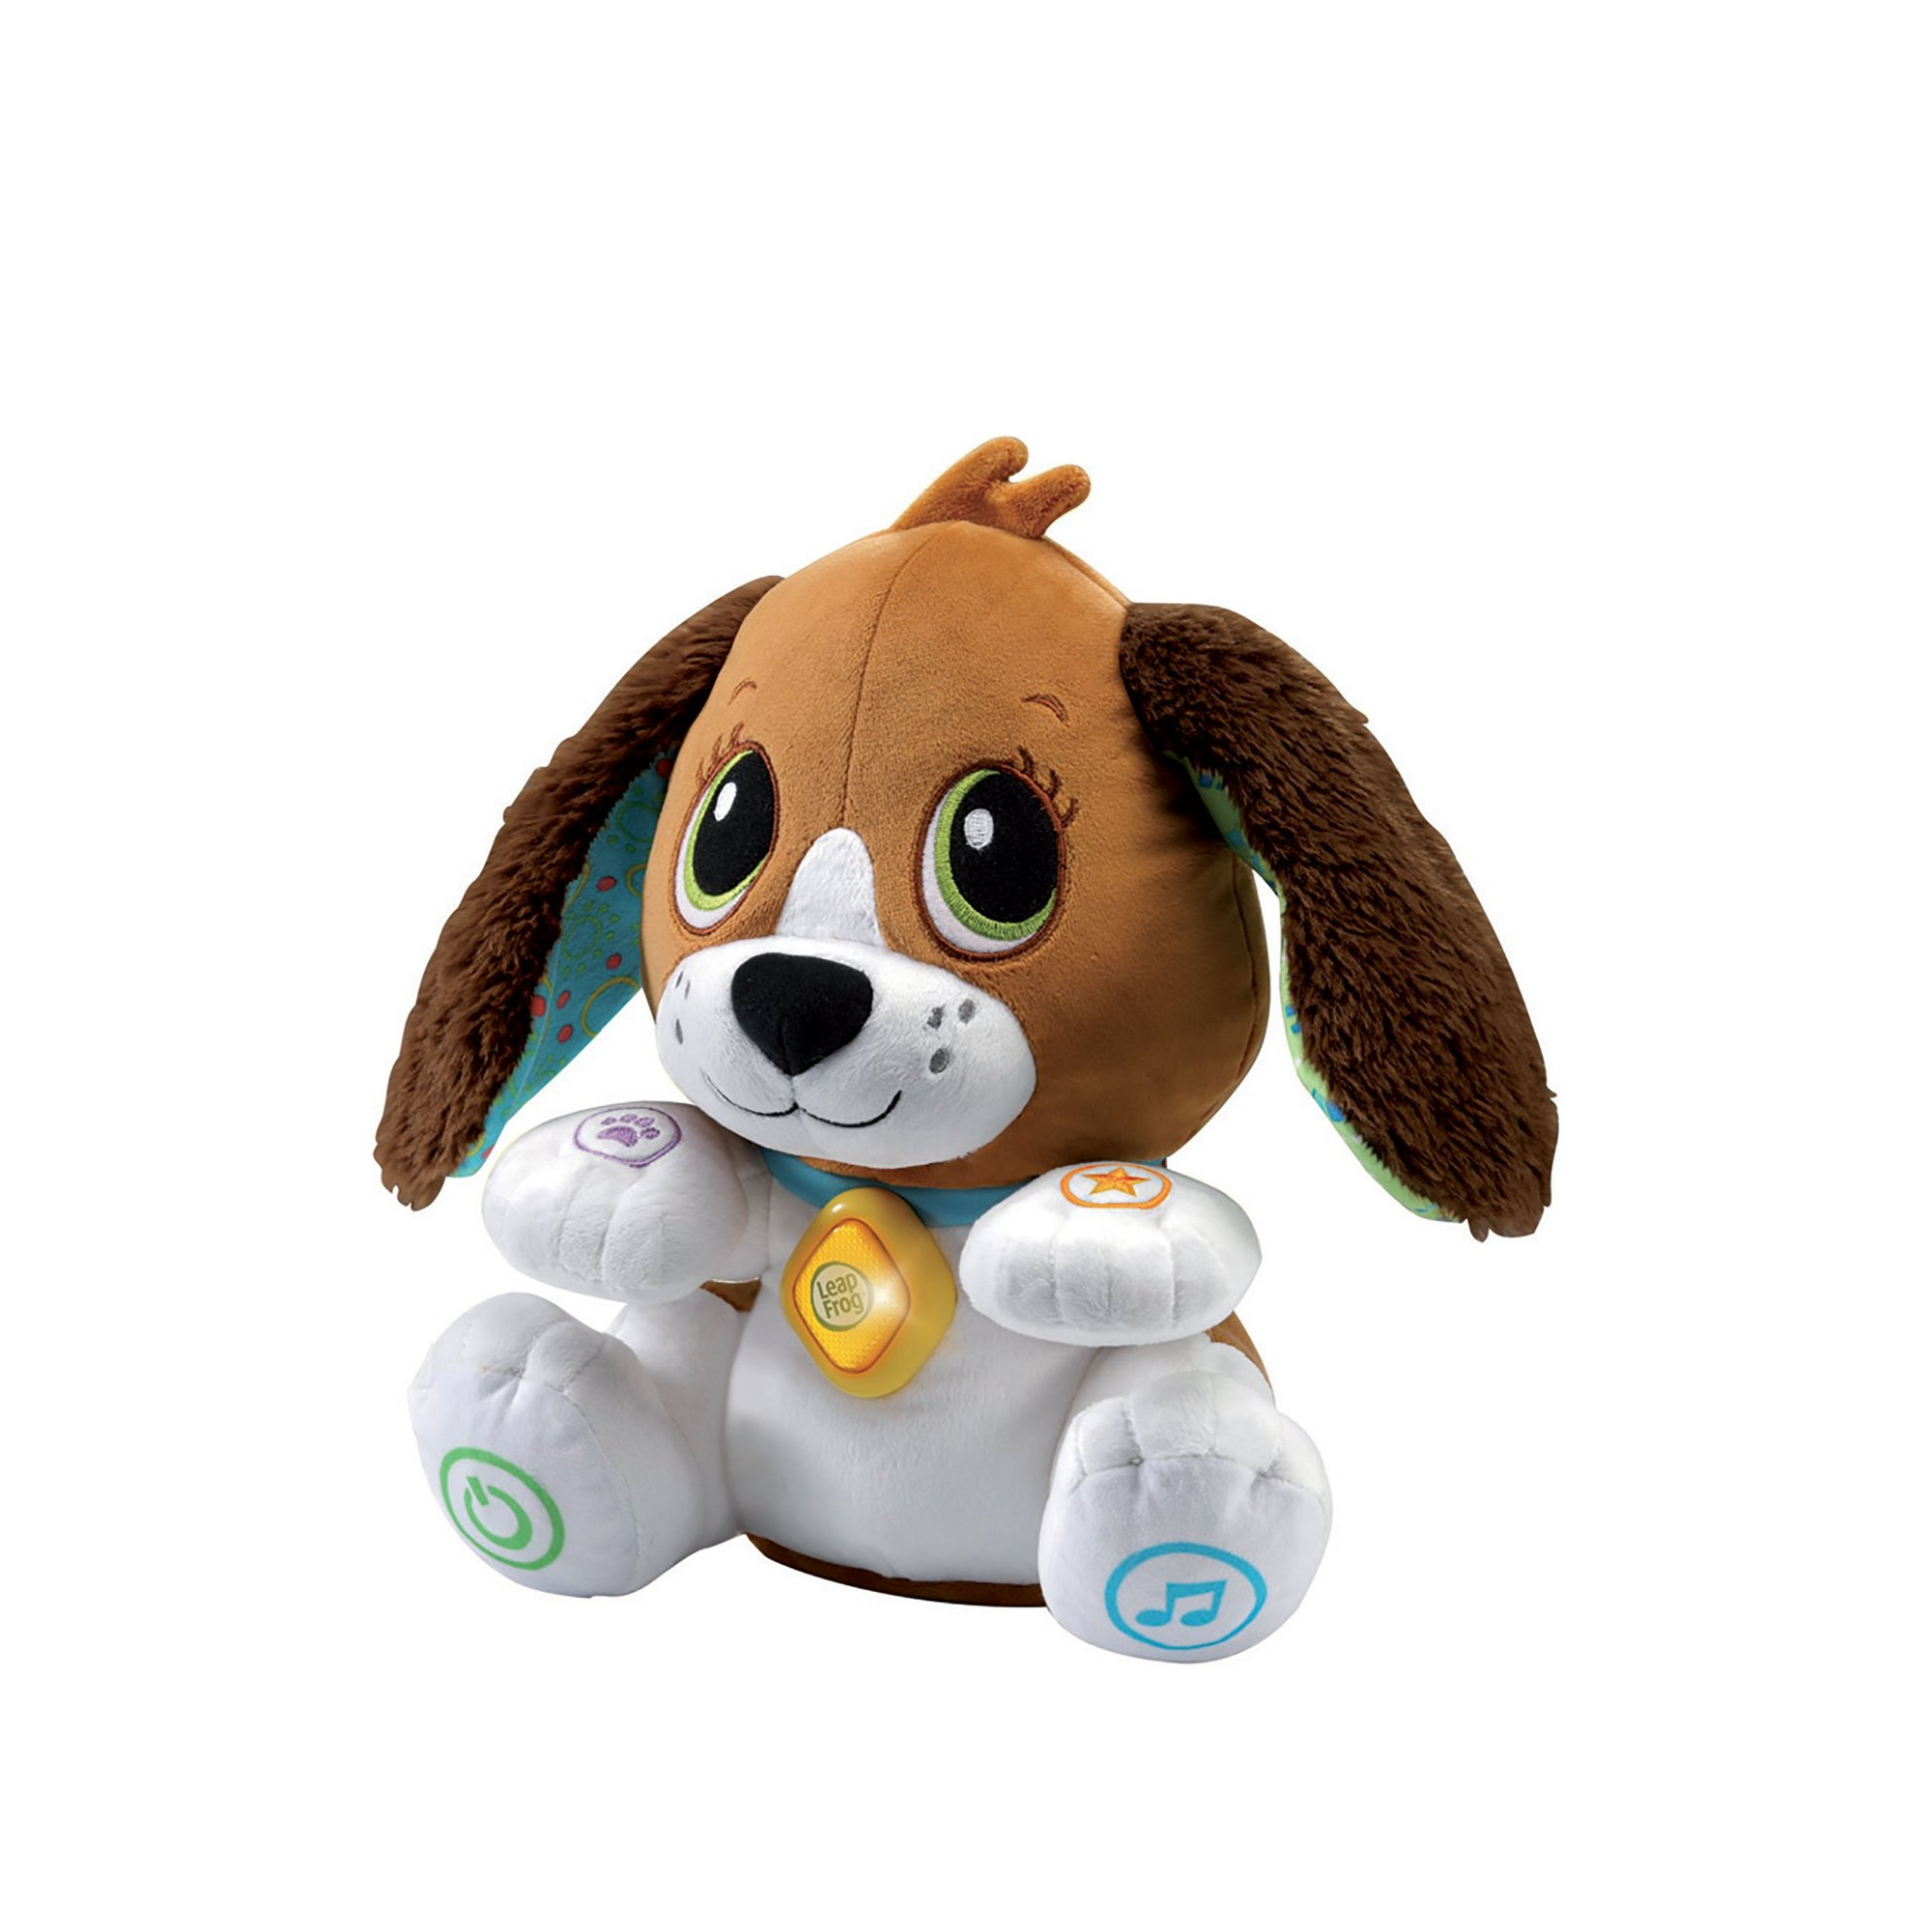 Image of Leap Frog Speak and Learn Puppy